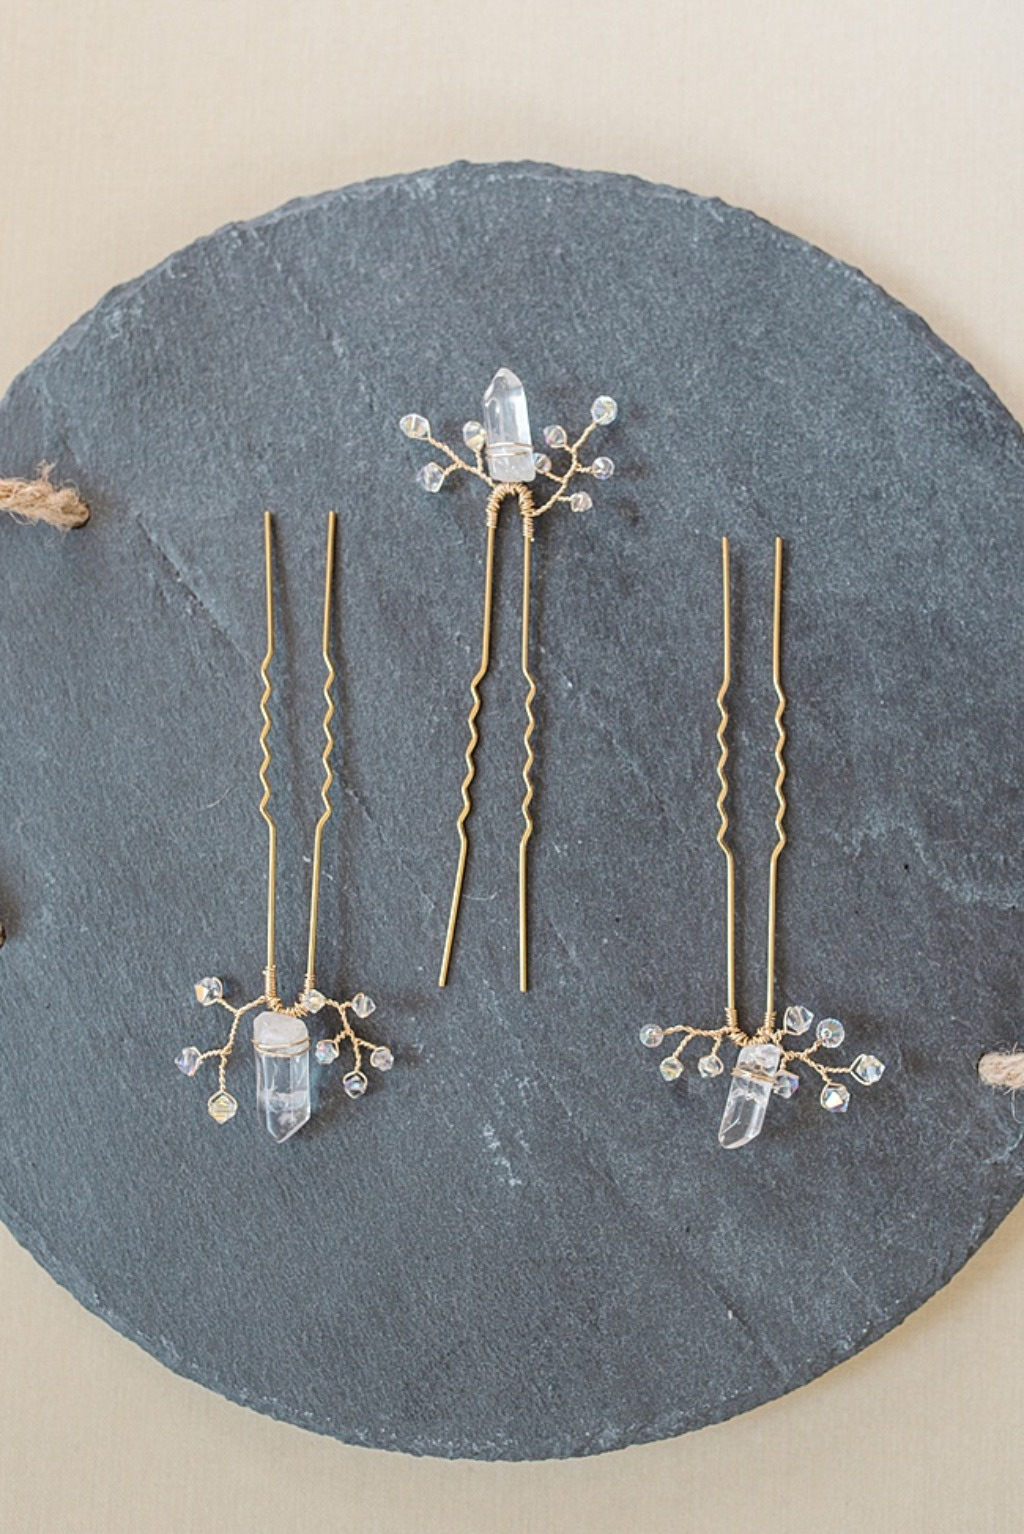 Crystal spike bridal hairpin set with yellow gold accents // Custom wedding jewelry & hair accessories made by J'Adorn Designs